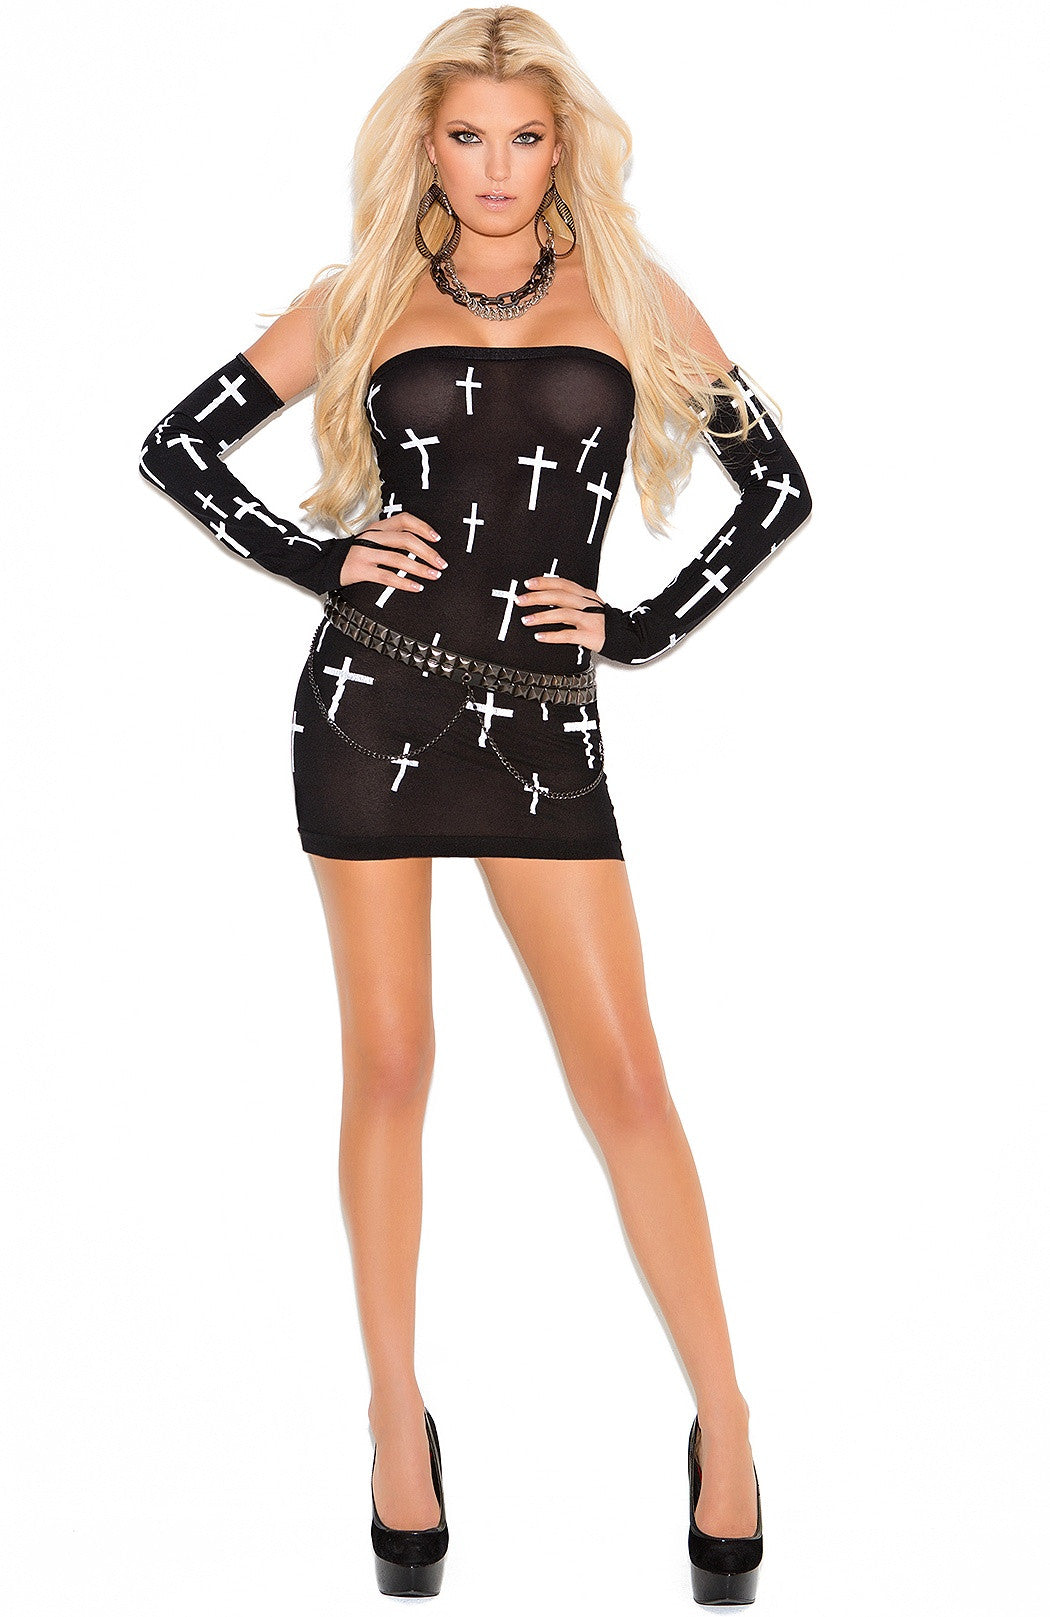 EM-1588 Opaque dress with cross motif - Sexylingerieland